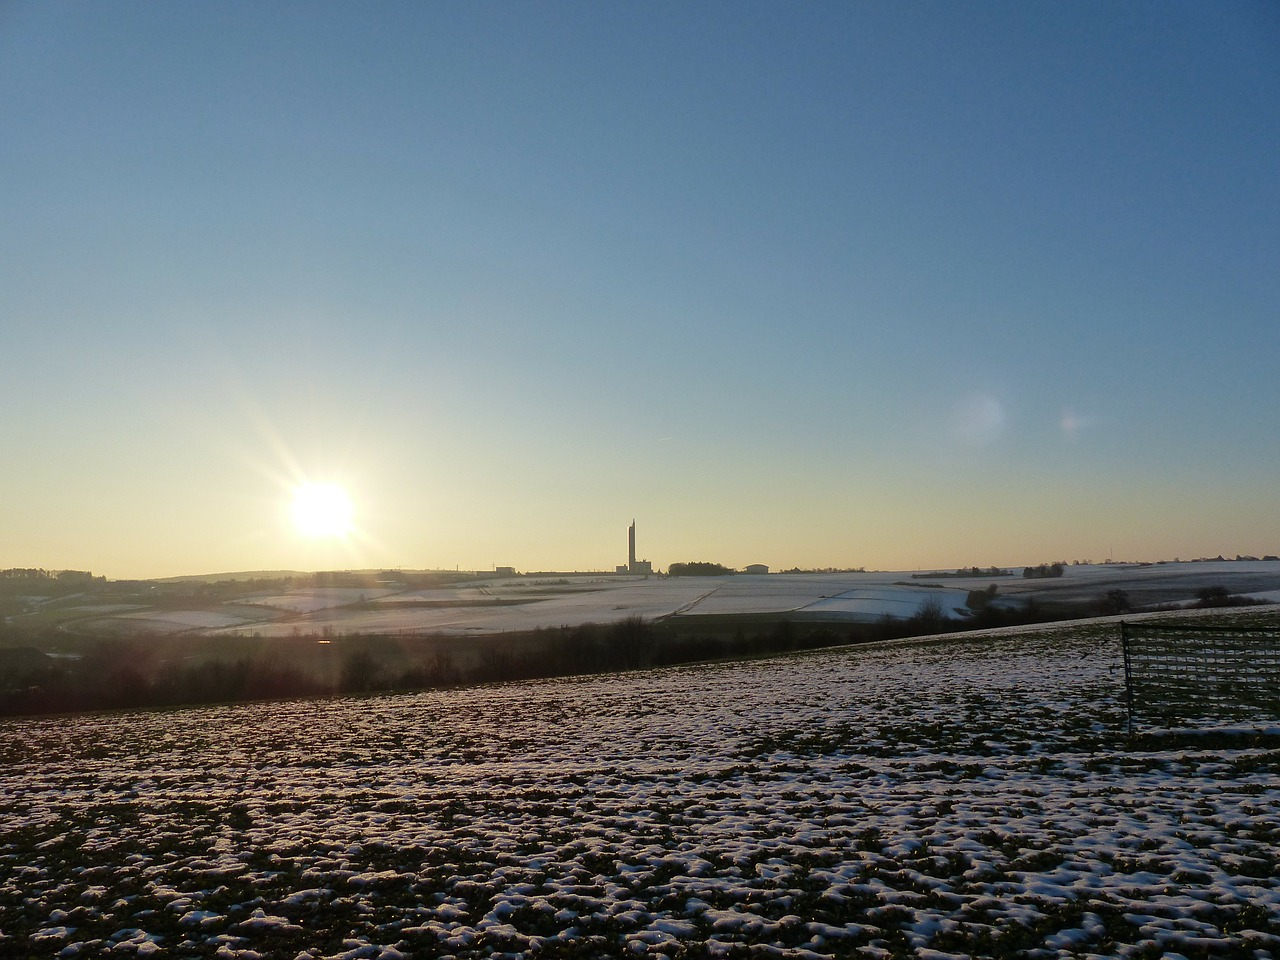 landscape wintry arable free photo